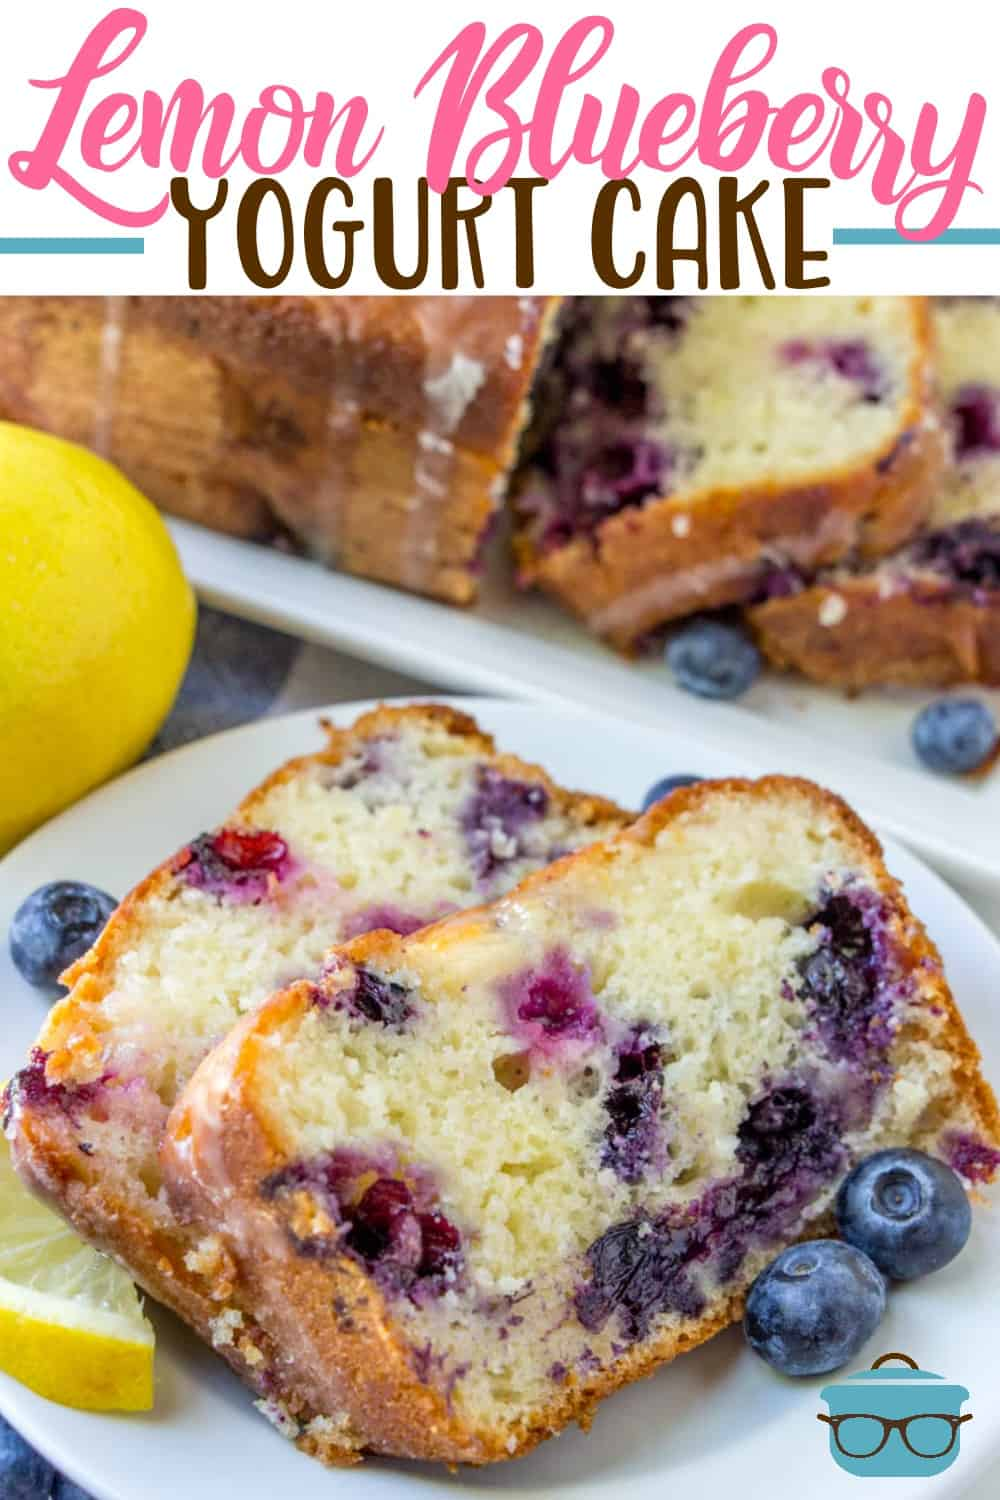 Lemon Blueberry Yogurt Cake is a moist, made-from-scratch lemon cake with fresh blueberries, lemon juice, simple syrup and a lemon glaze! #blueberry #dessert